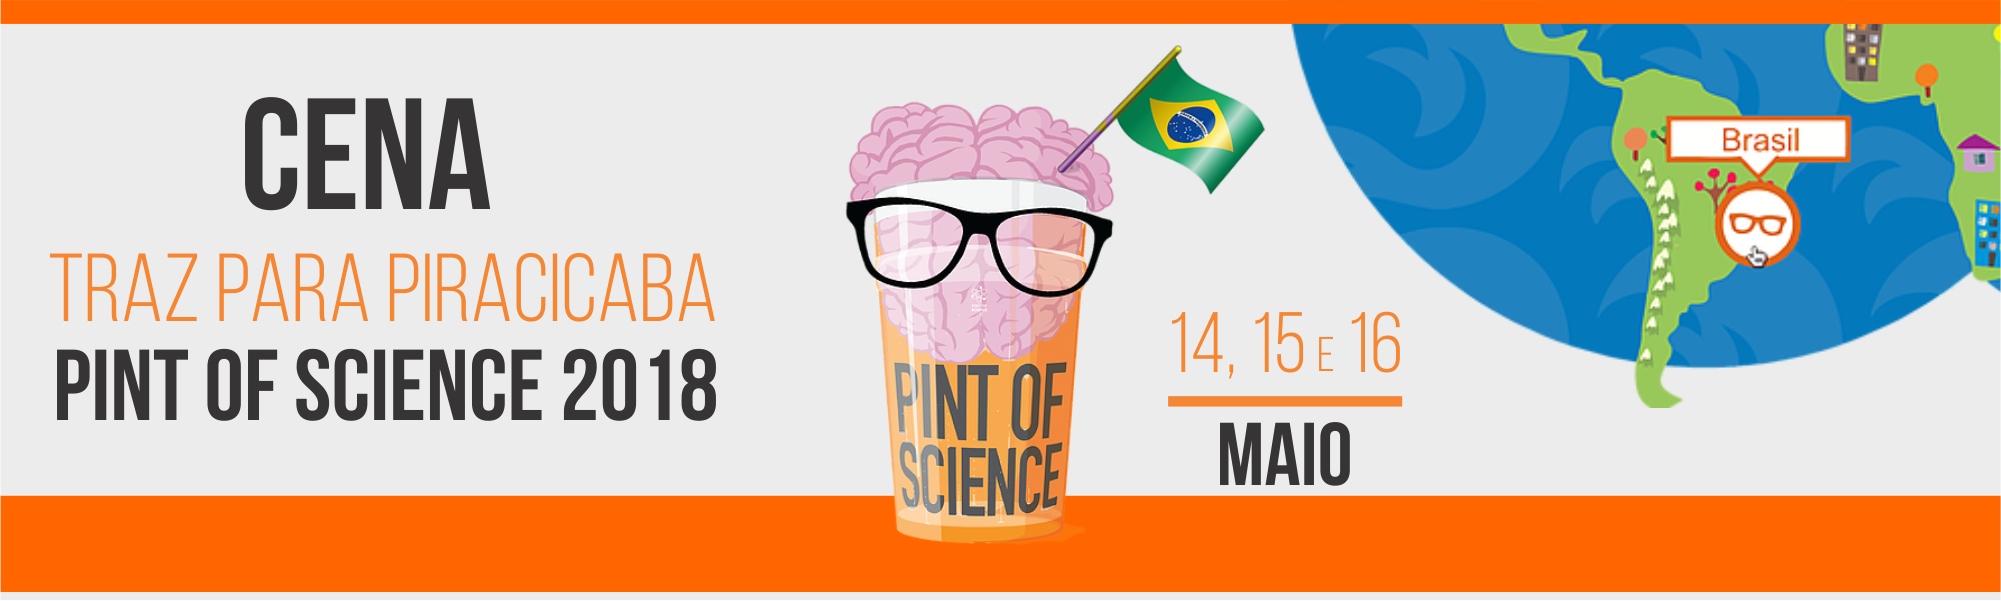 pint_of_science2018